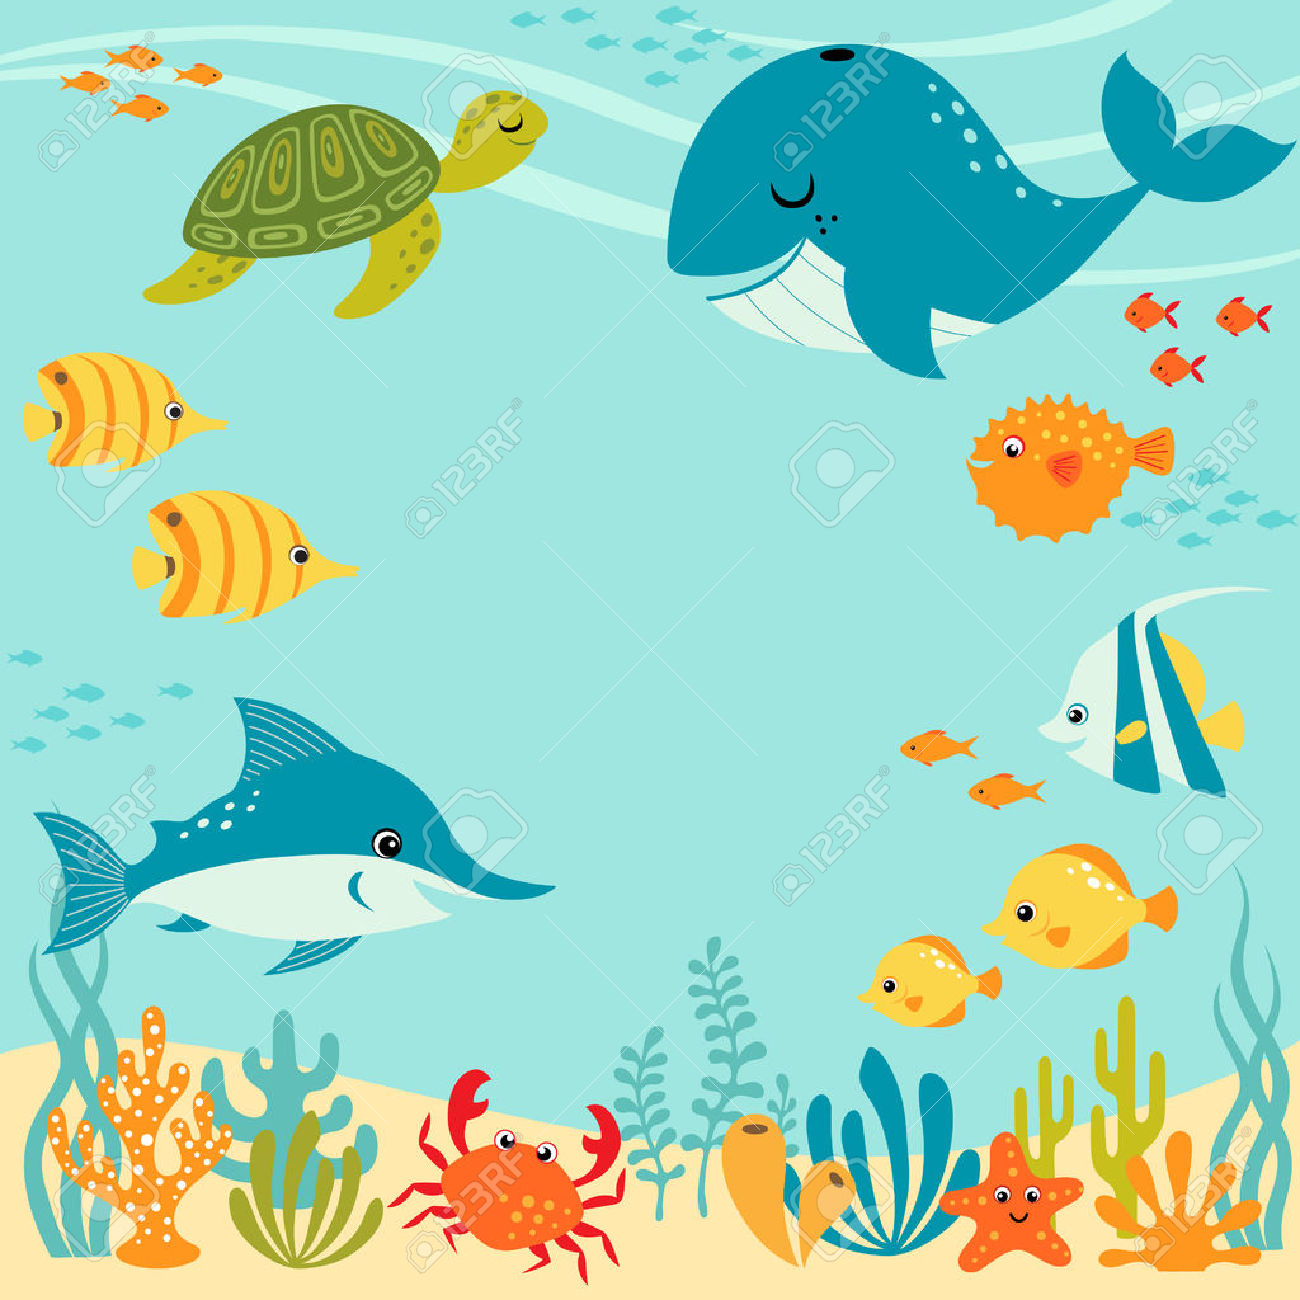 Undersea clipart picture freeuse library Underwater Cliparts | Free download best Underwater Cliparts ... picture freeuse library